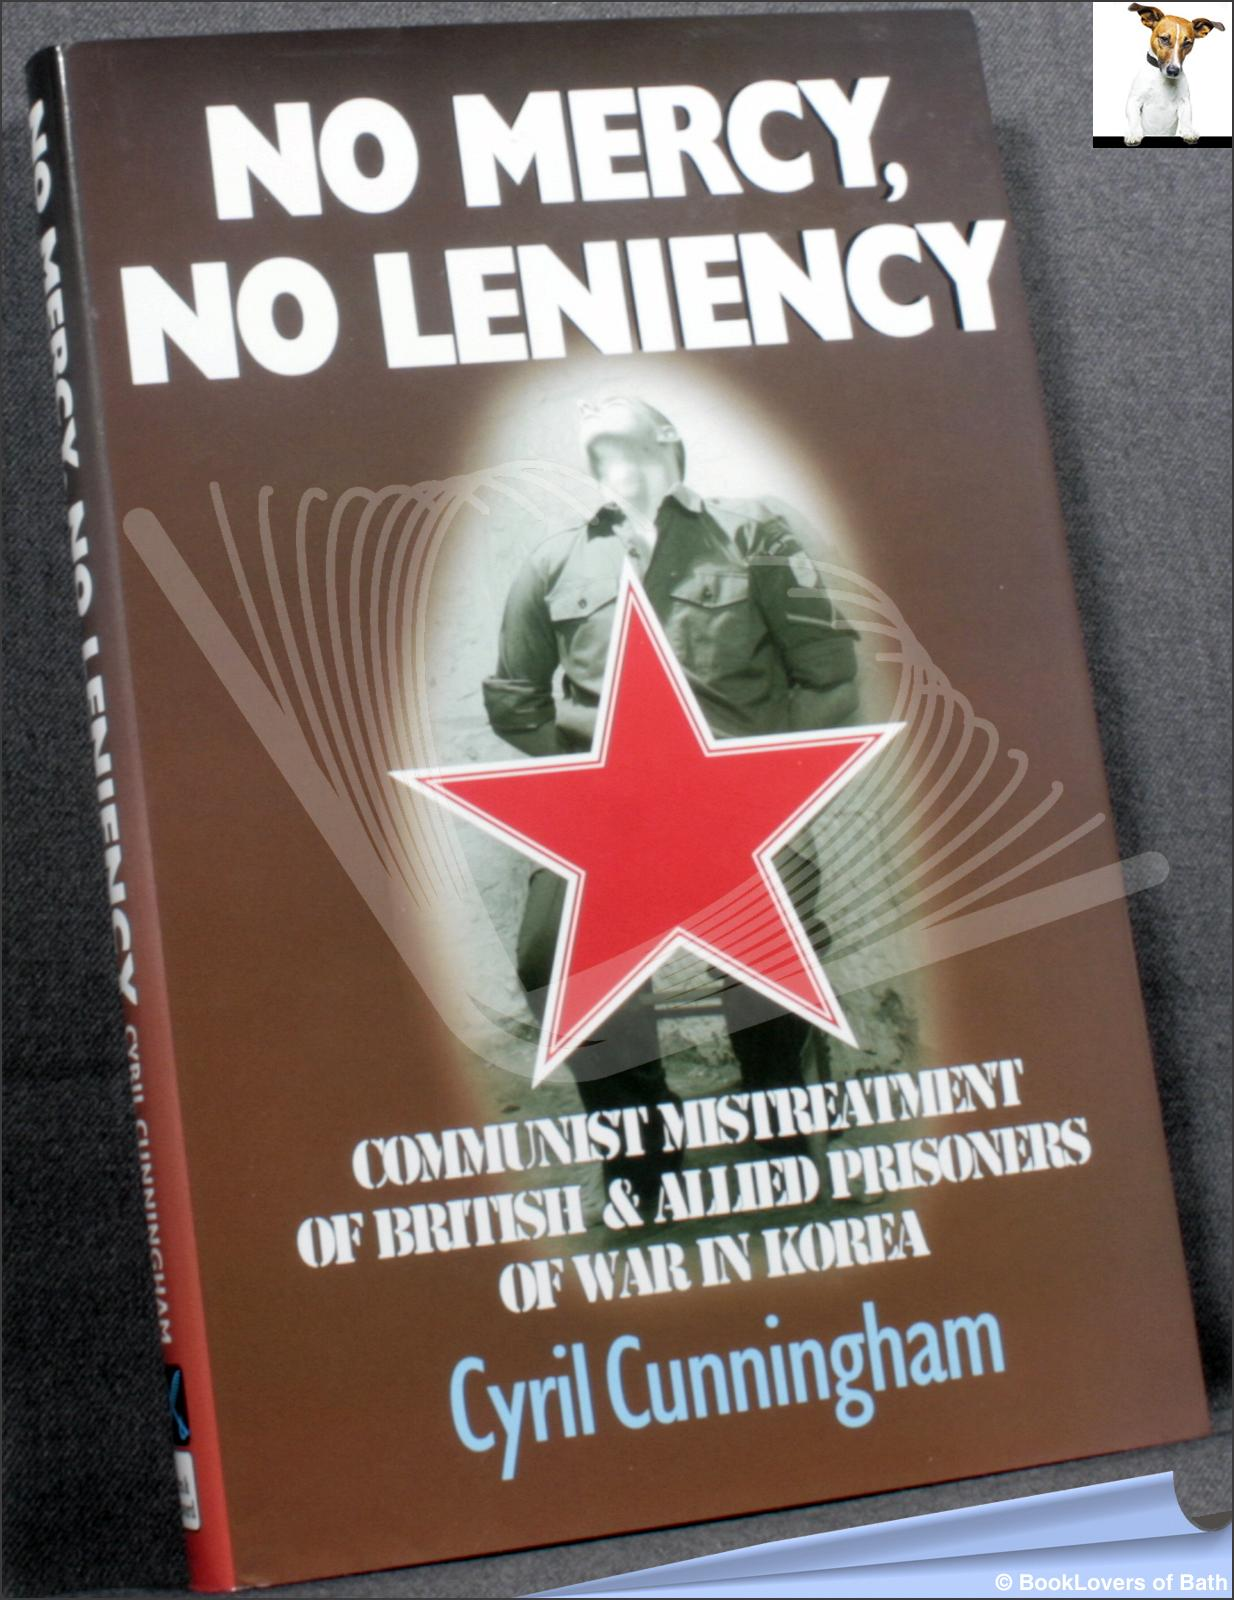 No Mercy, No Leniency: Communist Mistreatment of British Prisoners of War in Korea - Cyril Cunningham